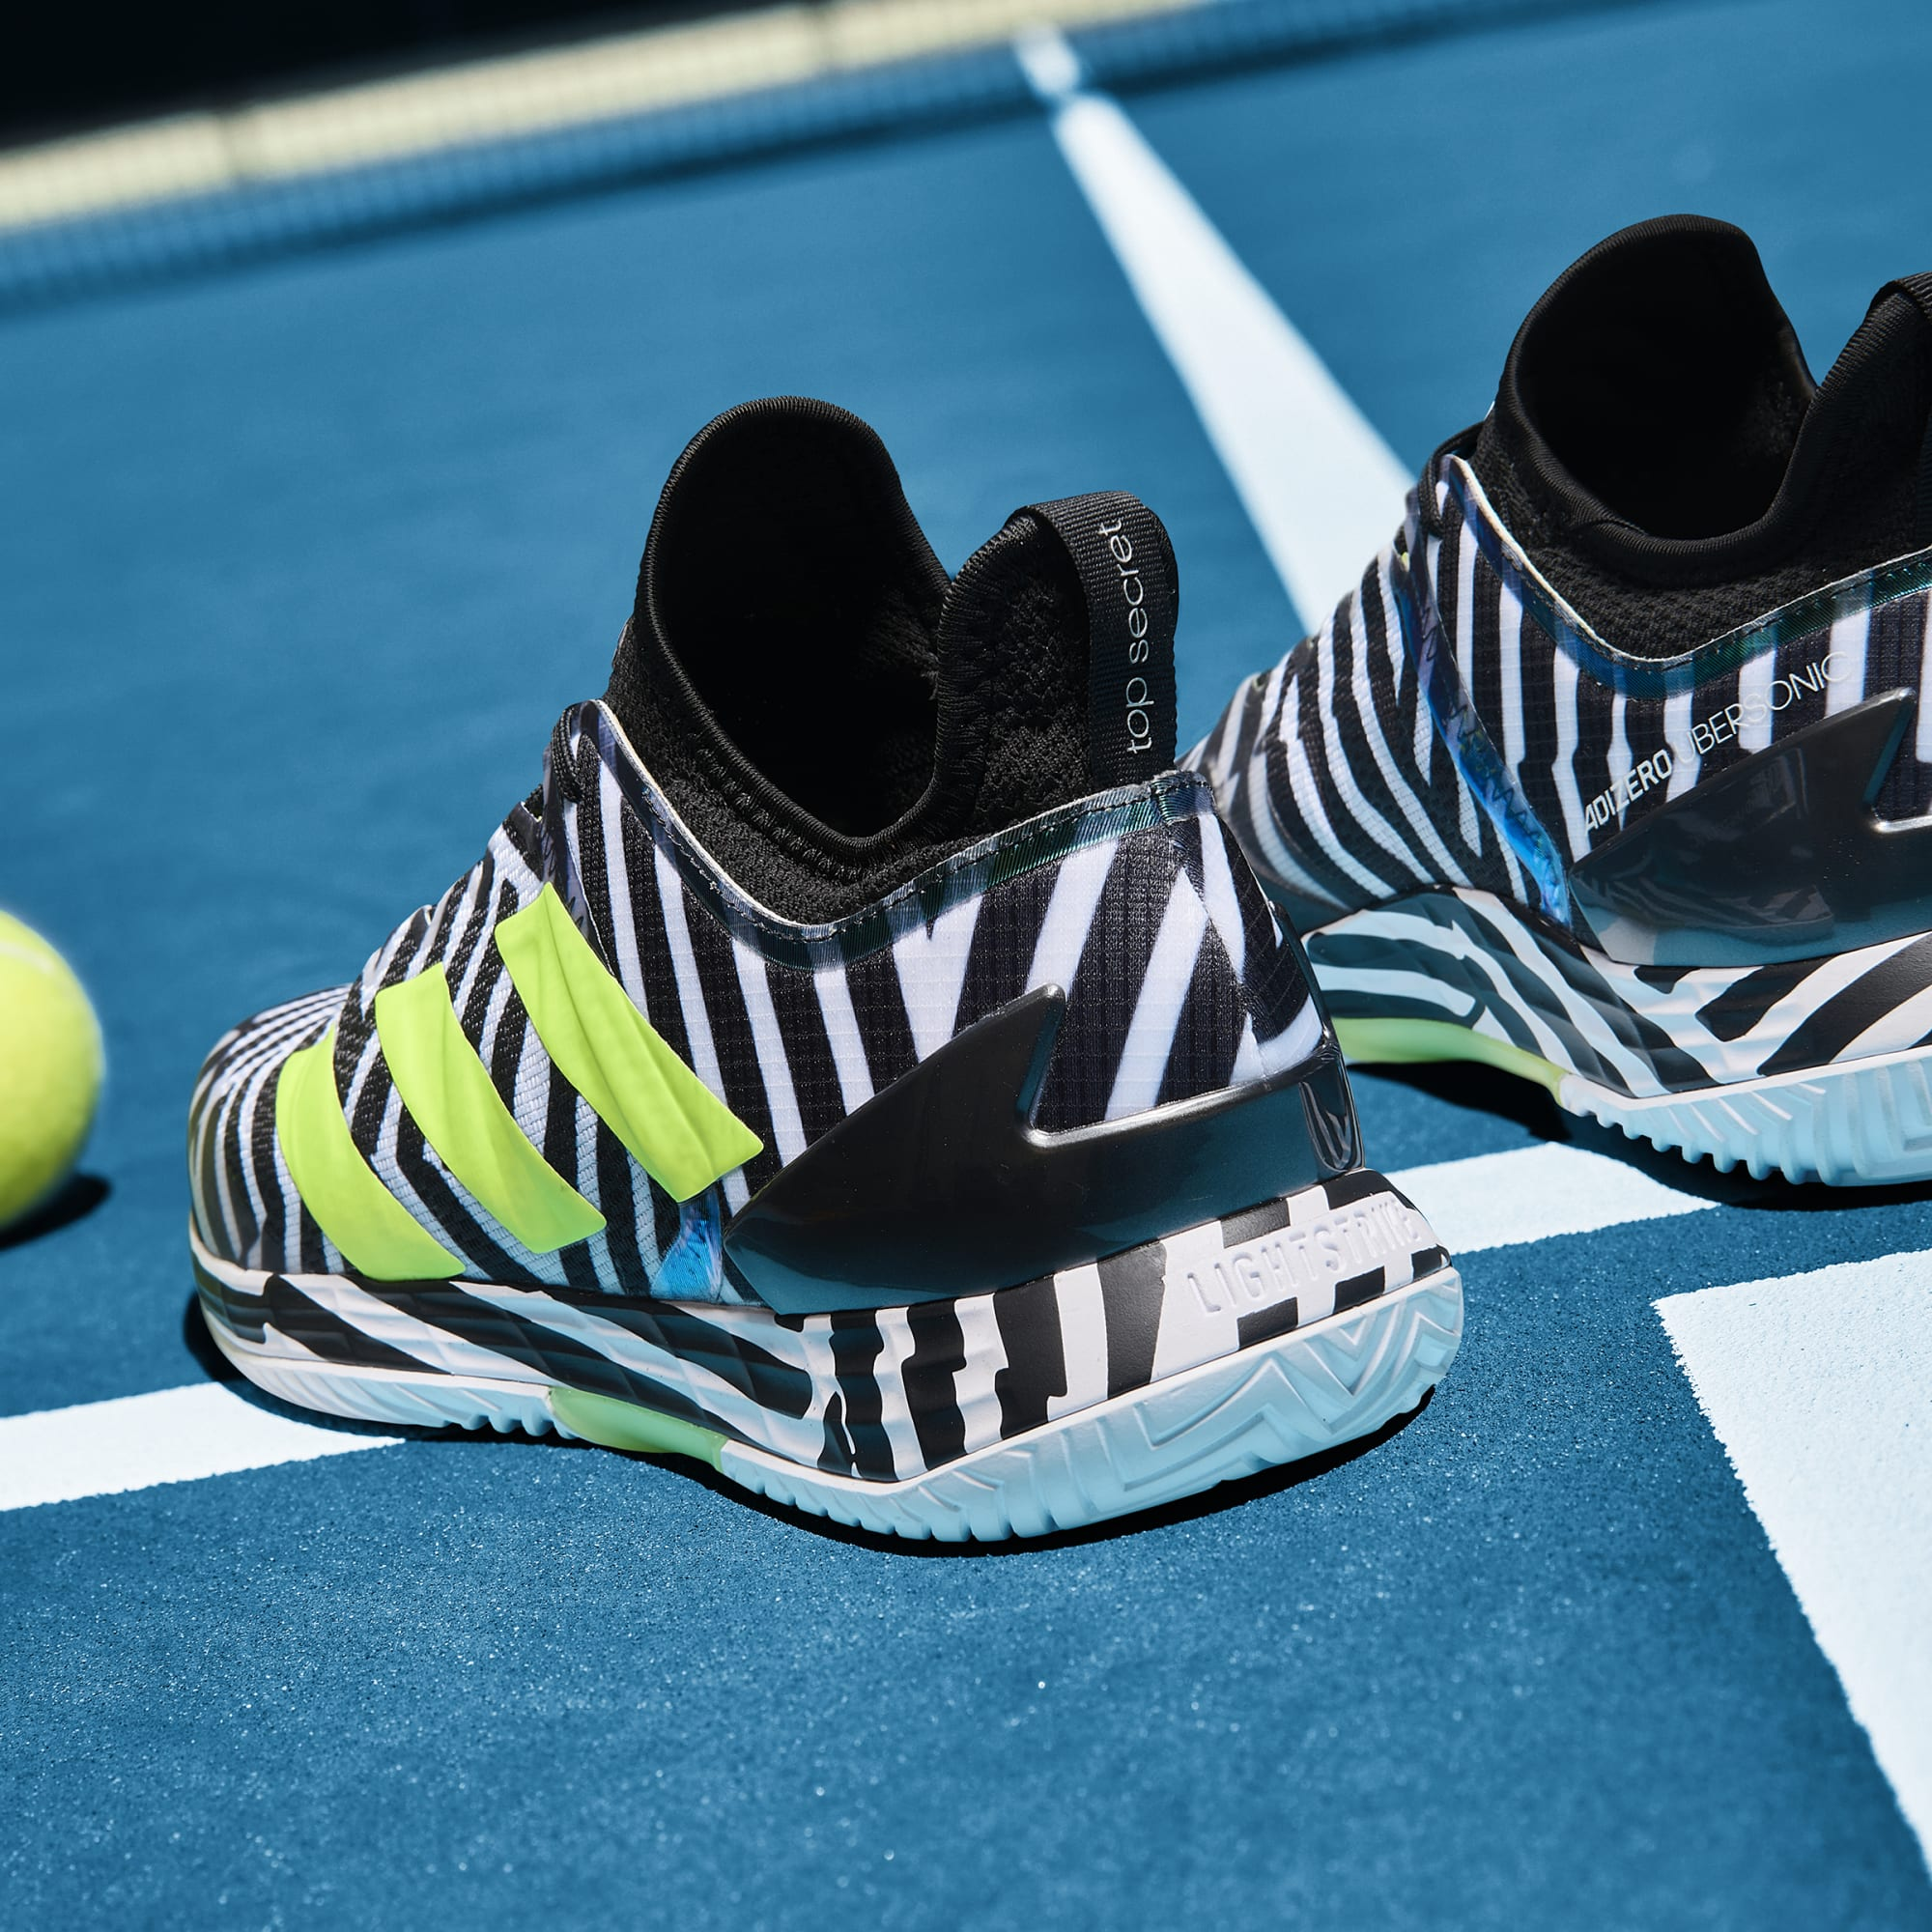 The Adidas Ubersonic 4 Tennis Shoe: What To Expect